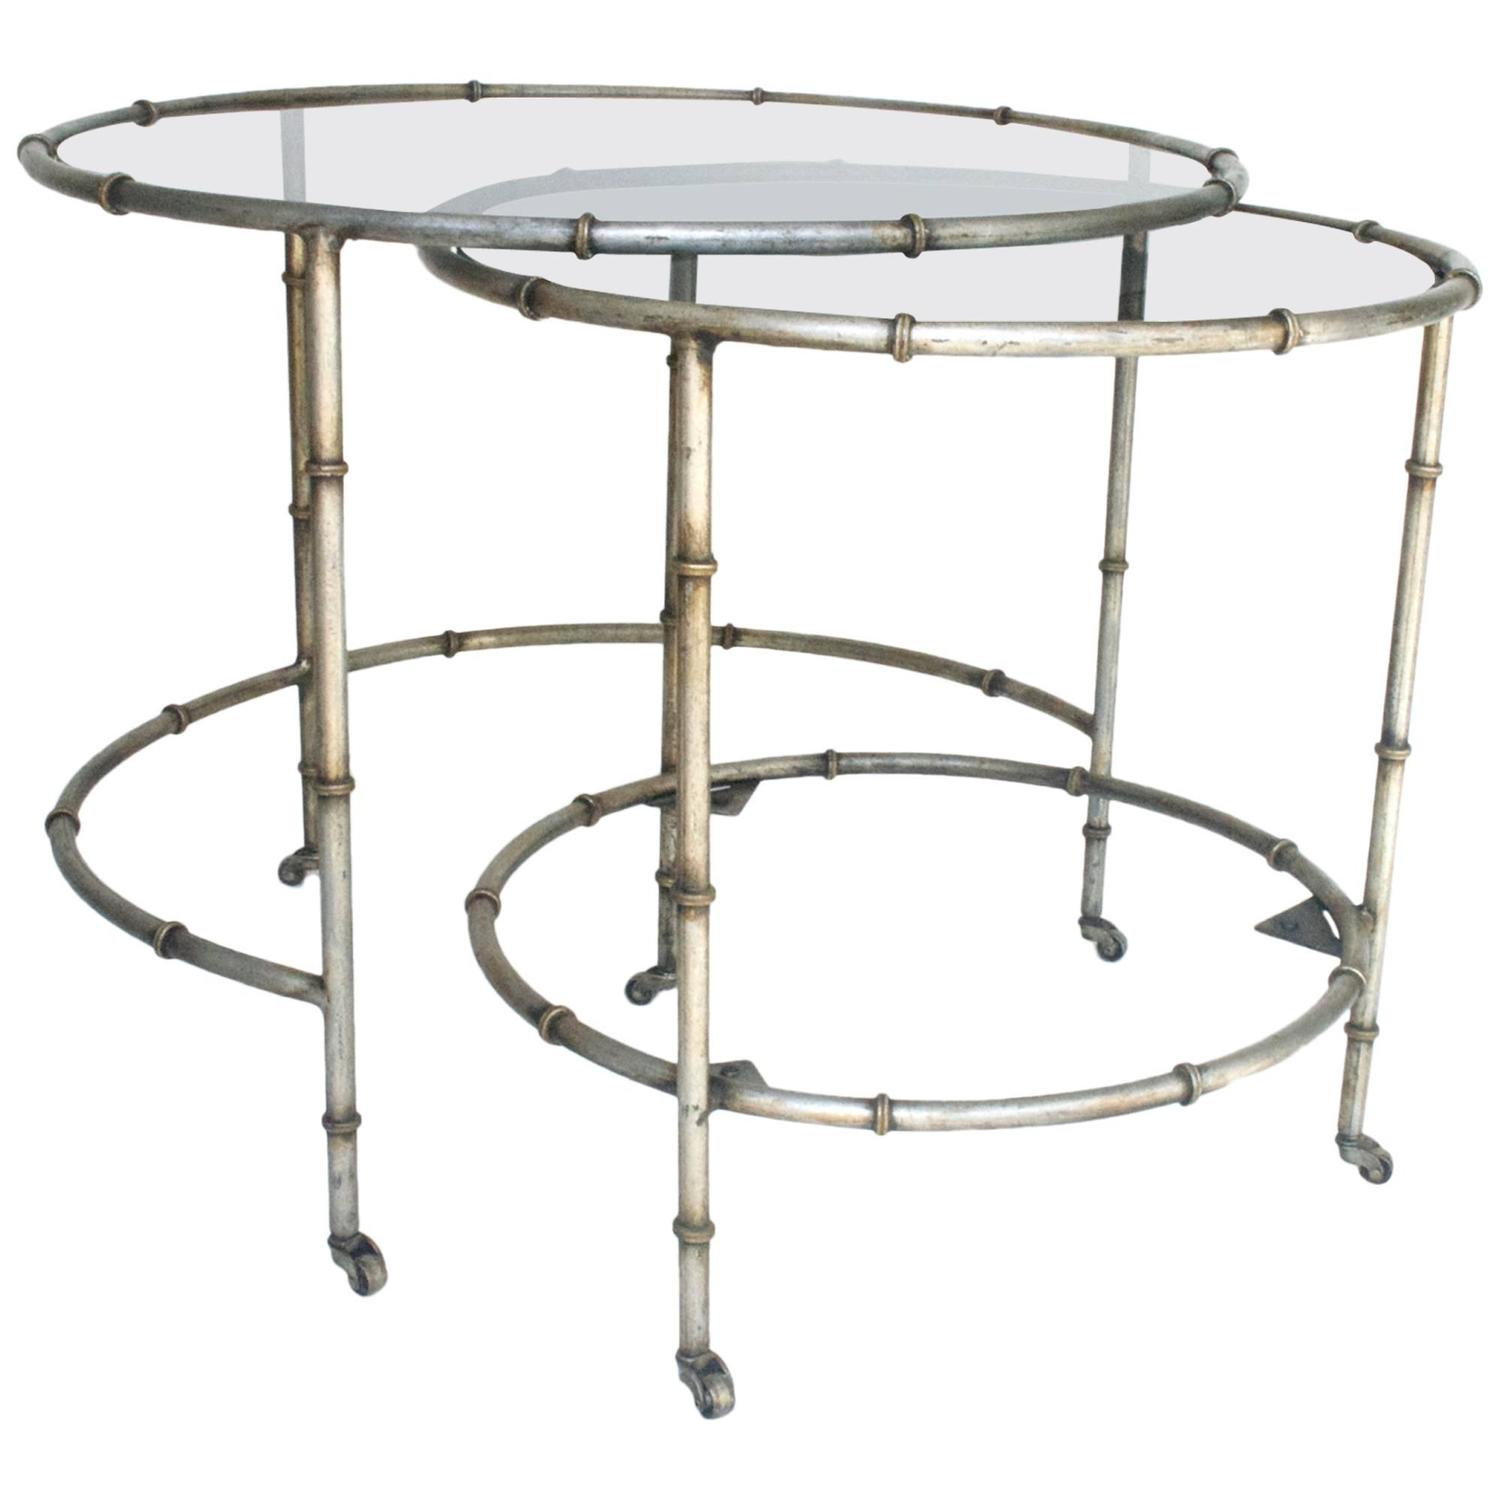 Round Nesting Tables In Silver At 1stdibs. Full resolution  portraiture, nominally Width 1500 Height 1500 pixels, portraiture with #766D55.